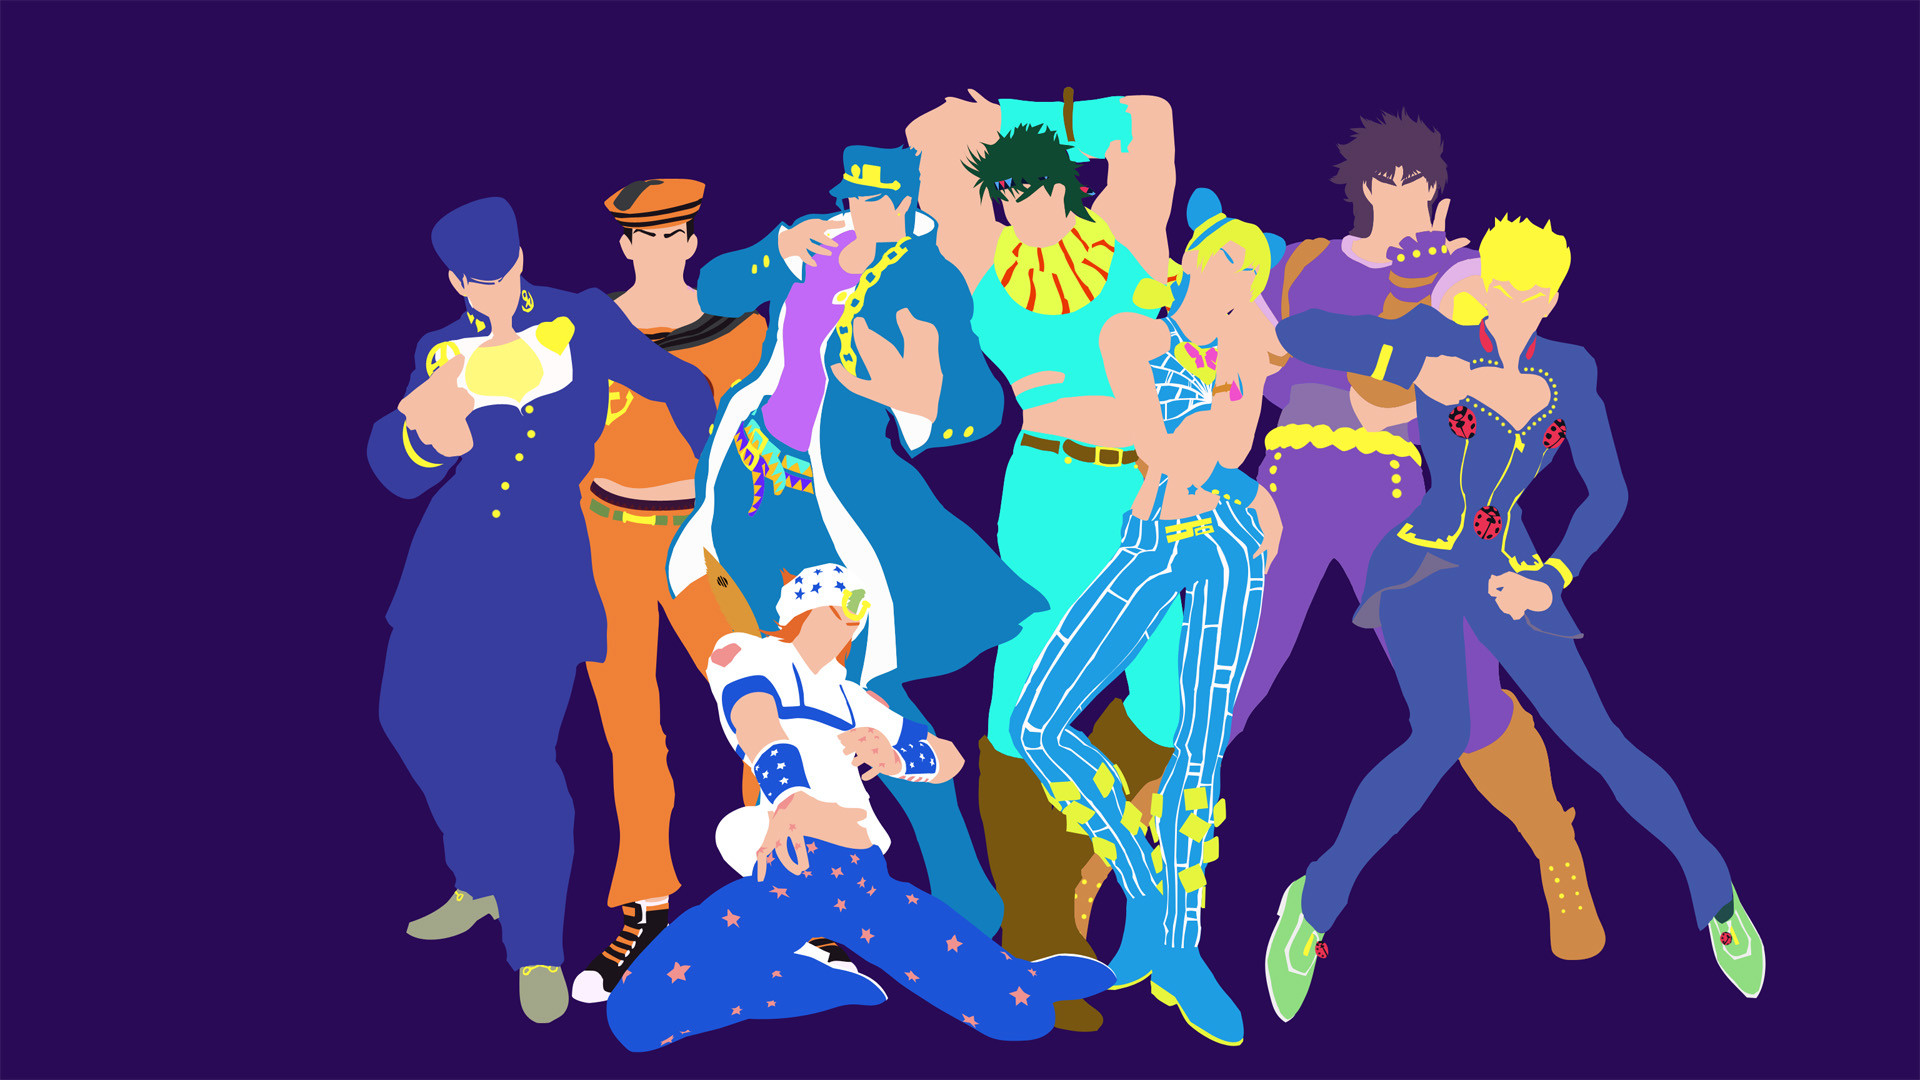 1920x1080 Jojo's Bizarre Adventure Wallpaper 10 - 1920 X 1080